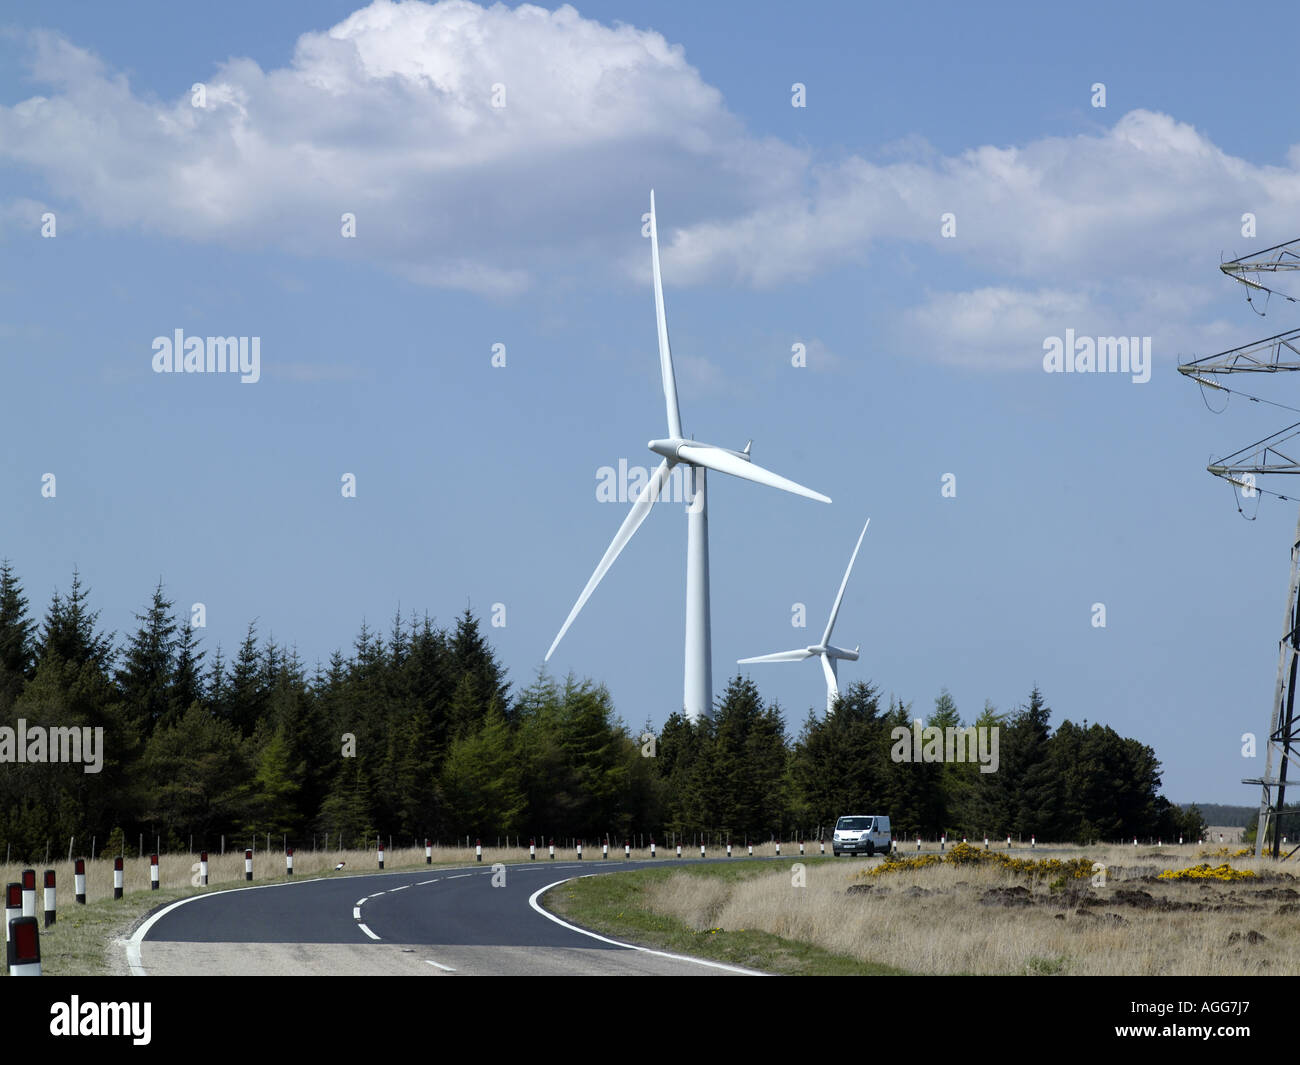 Wind Farm Turbines Caithness Northern Scotland 2006,  with vehicle on road to give scale. - Stock Image